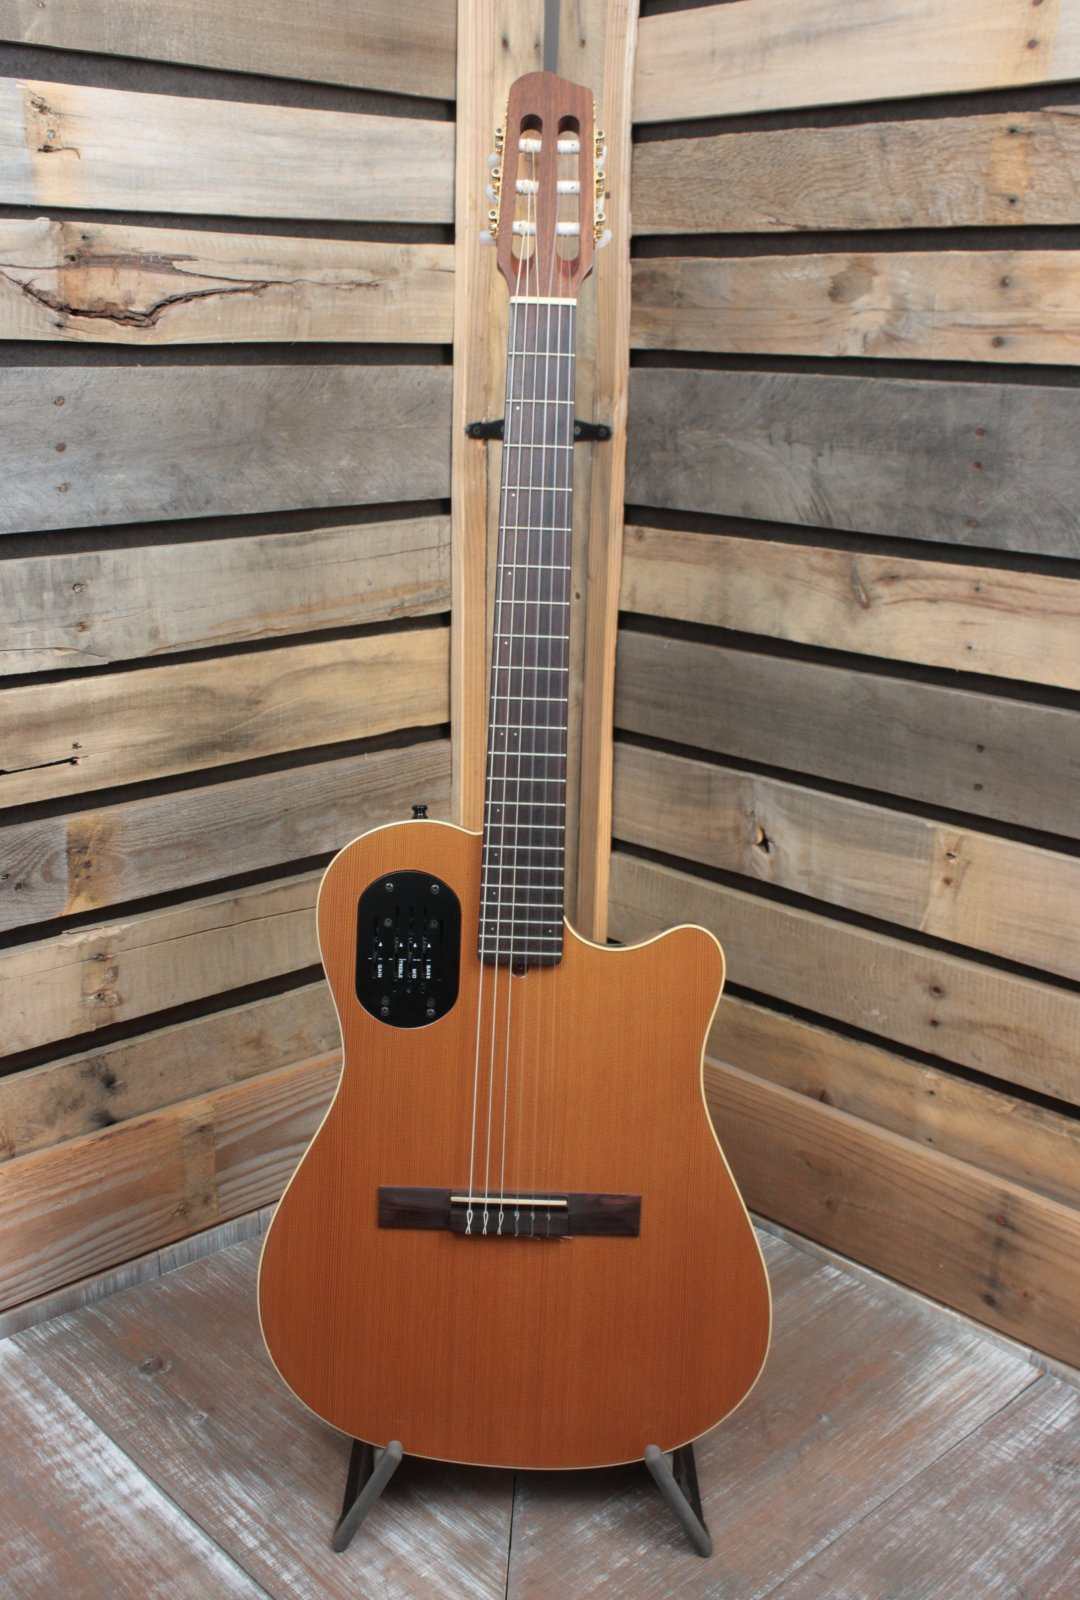 Used (1996) Godin Classical Nylon Acoustic/Electric Guitar with Hardshell Case